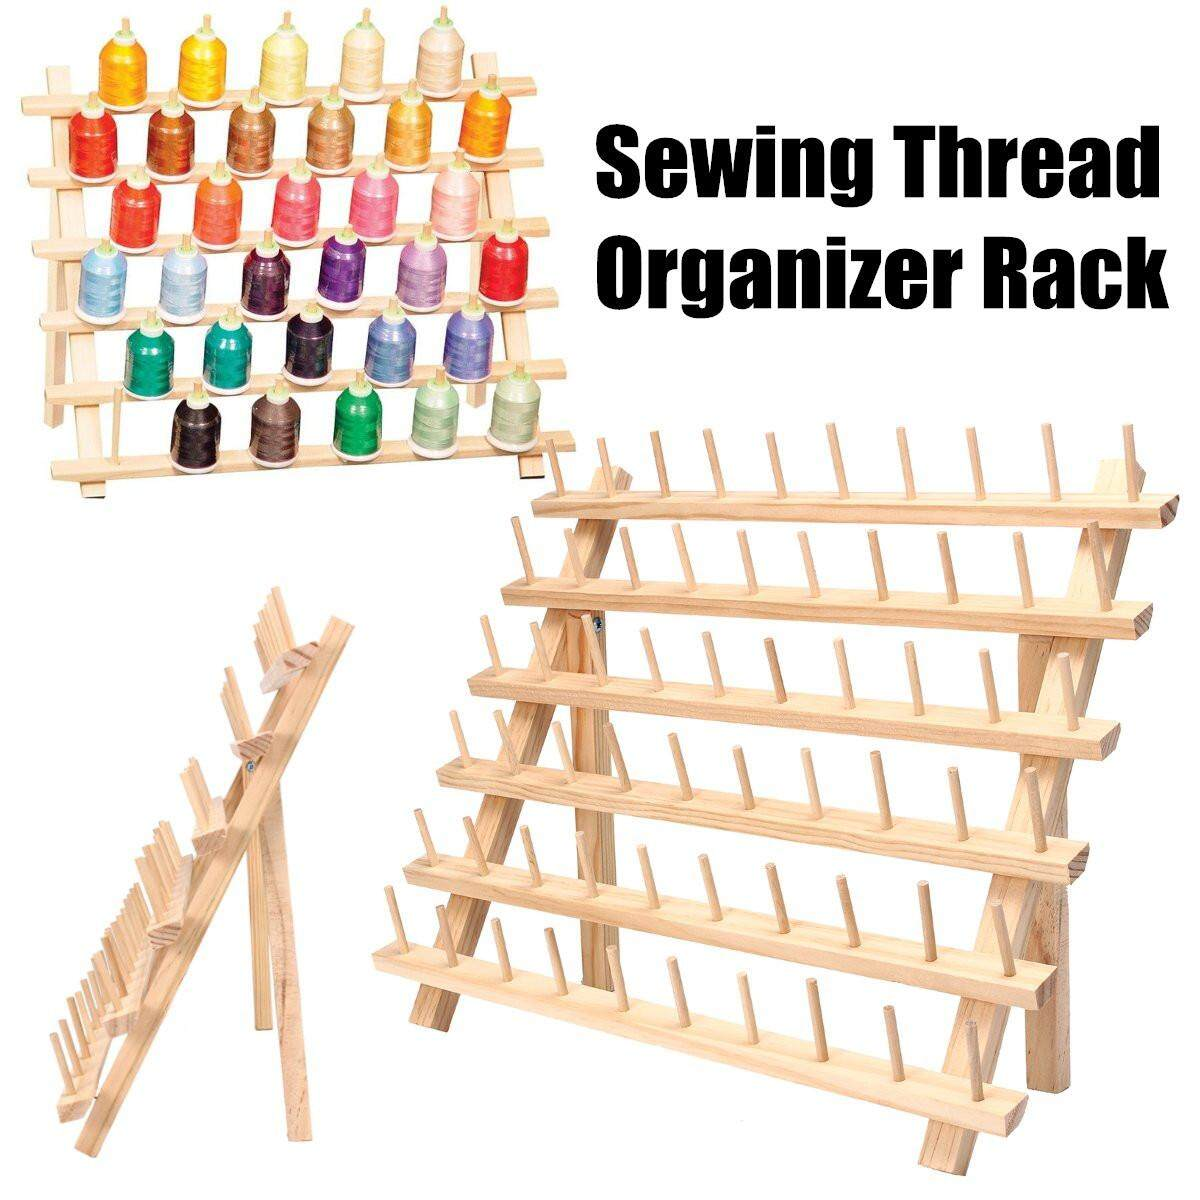 Wooden Embroidery Spool Sewing Thread Rack Storage Organizer Holder Cones Stand By Moonbeam.